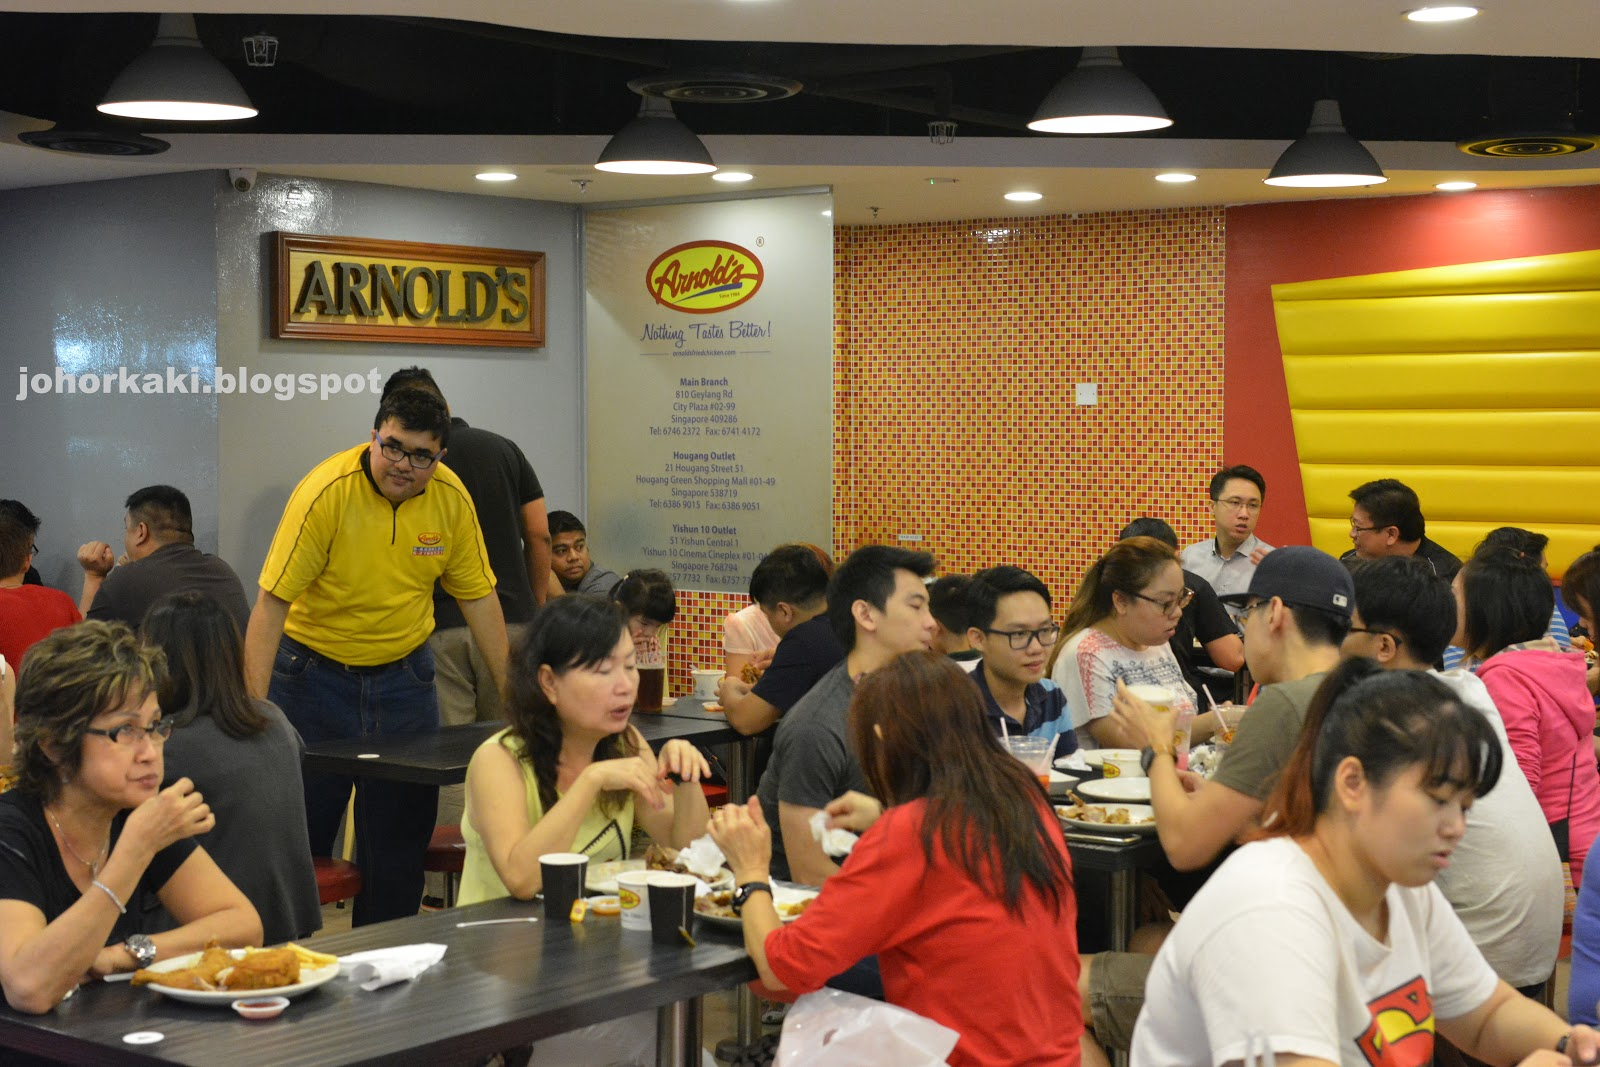 Arnold S Fried Chicken Singapore S Own Best Loved By Locals Johor Kaki Travels For Food